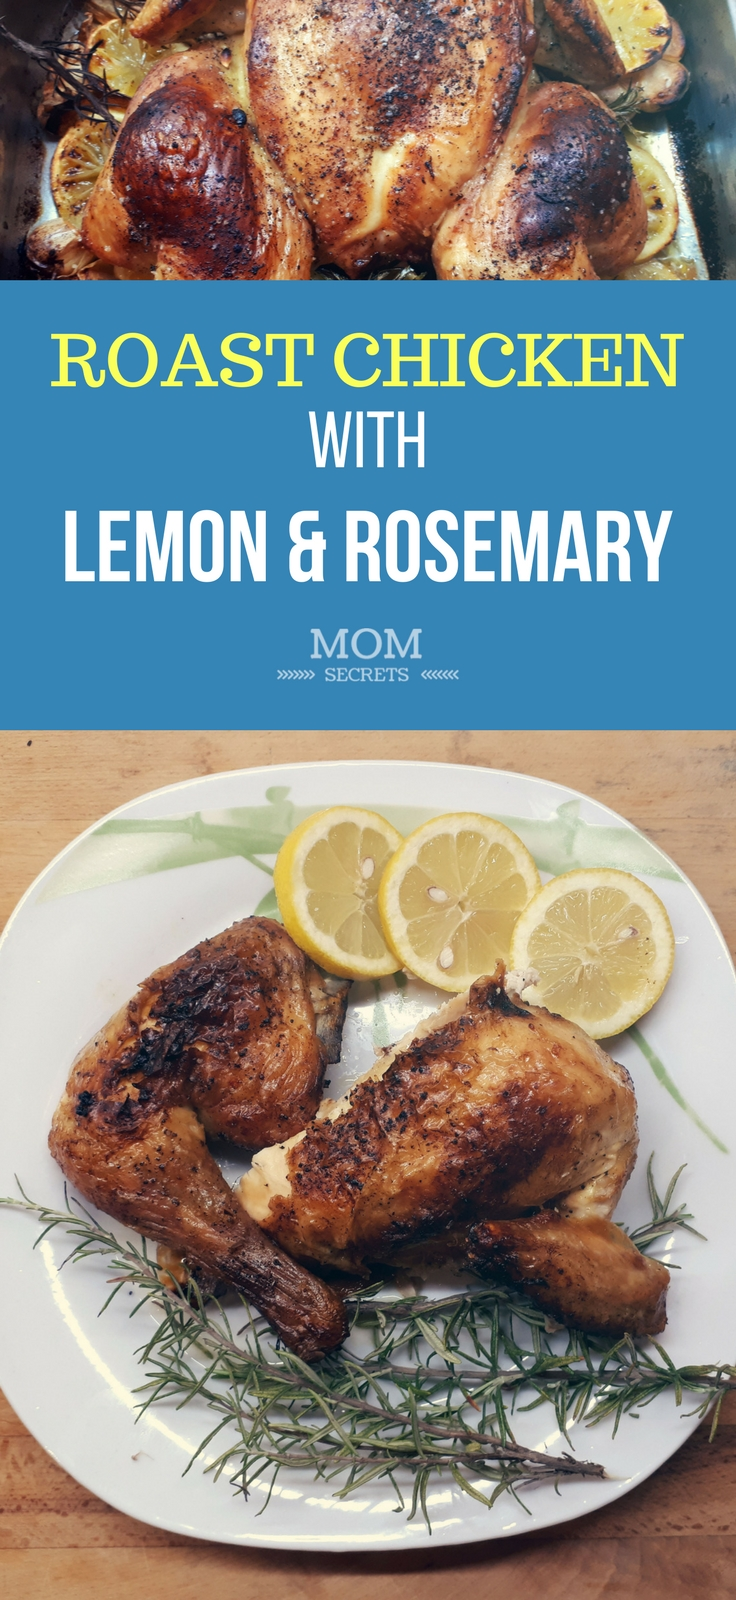 Whole Roast Chicken Recipe with Lemon and Rosemary. Perfect for a quick dinner oven butterfly roast chicken. Week night healthy dinner roast chicken with herbs.